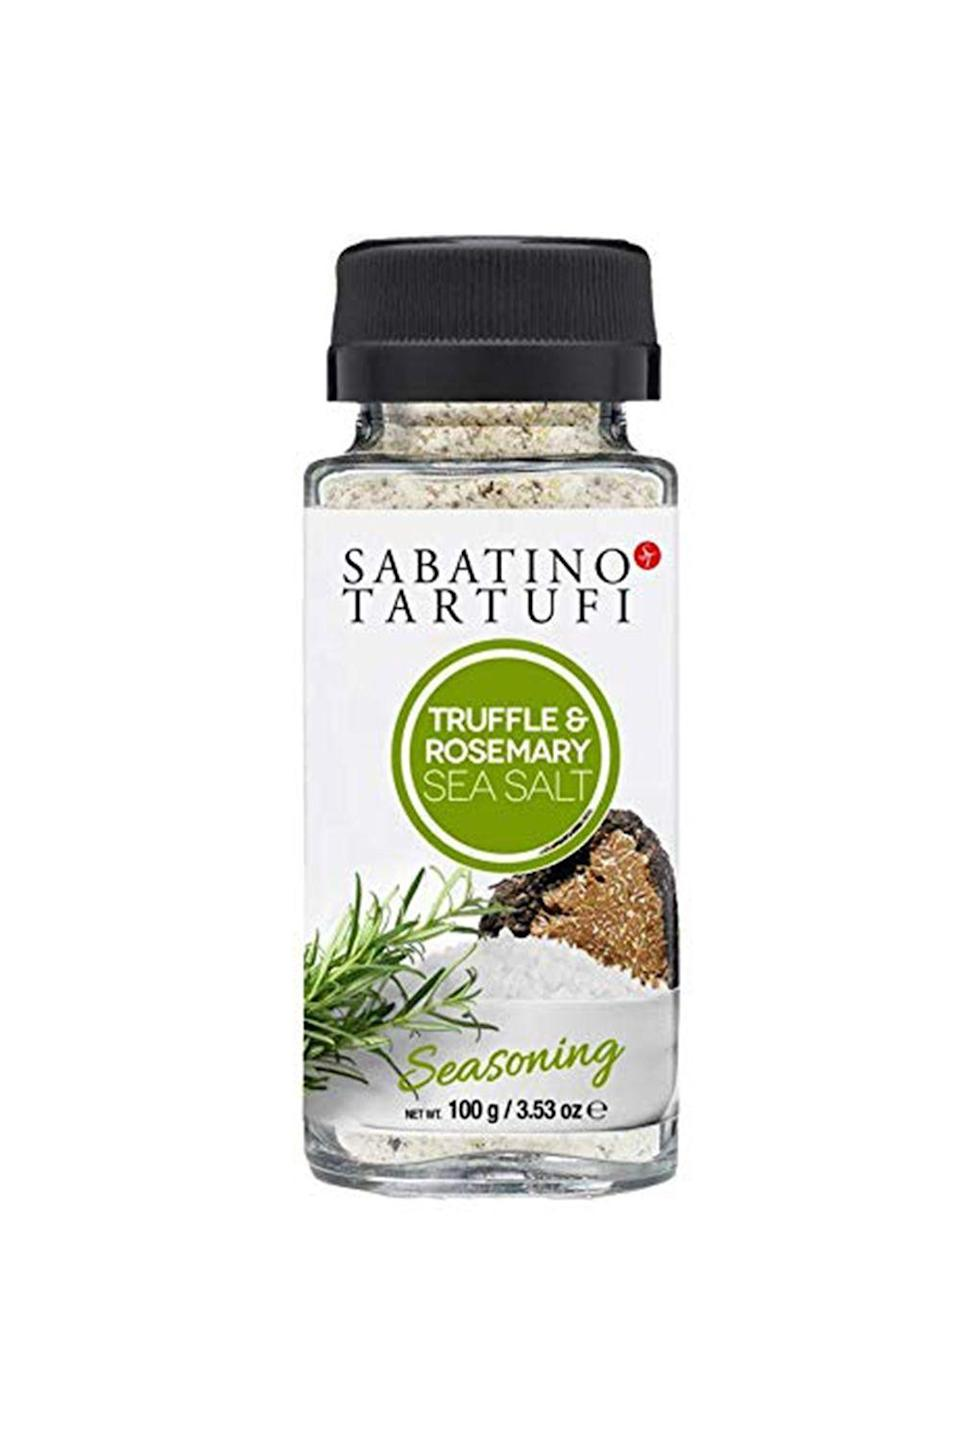 """<p><strong>Sabatino Tartufi</strong></p><p>amazon.com</p><p><strong>$12.75</strong></p><p><a href=""""https://www.amazon.com/dp/B0793BYC1P?tag=syn-yahoo-20&ascsubtag=%5Bartid%7C10072.g.36429980%5Bsrc%7Cyahoo-us"""" rel=""""nofollow noopener"""" target=""""_blank"""" data-ylk=""""slk:Shop Now"""" class=""""link rapid-noclick-resp"""">Shop Now</a></p><p>Love all things truffle? So does Oprah—which is exactly why she put this decadent blend of Sicilian sea salt, black truffle, and rosemary on her 2017 Oprah's Favorite Things List. """"I took the truffle and rosemary sea salt out of my bag at a restaurant, and the waiter asked, 'You travel with that?' I said, 'Do you have it here?'"""" A dash of the earthy delight will turn any ordinary dish (think: steak, seafood, eggs, and vegetables) into something extraordinary.<br></p>"""